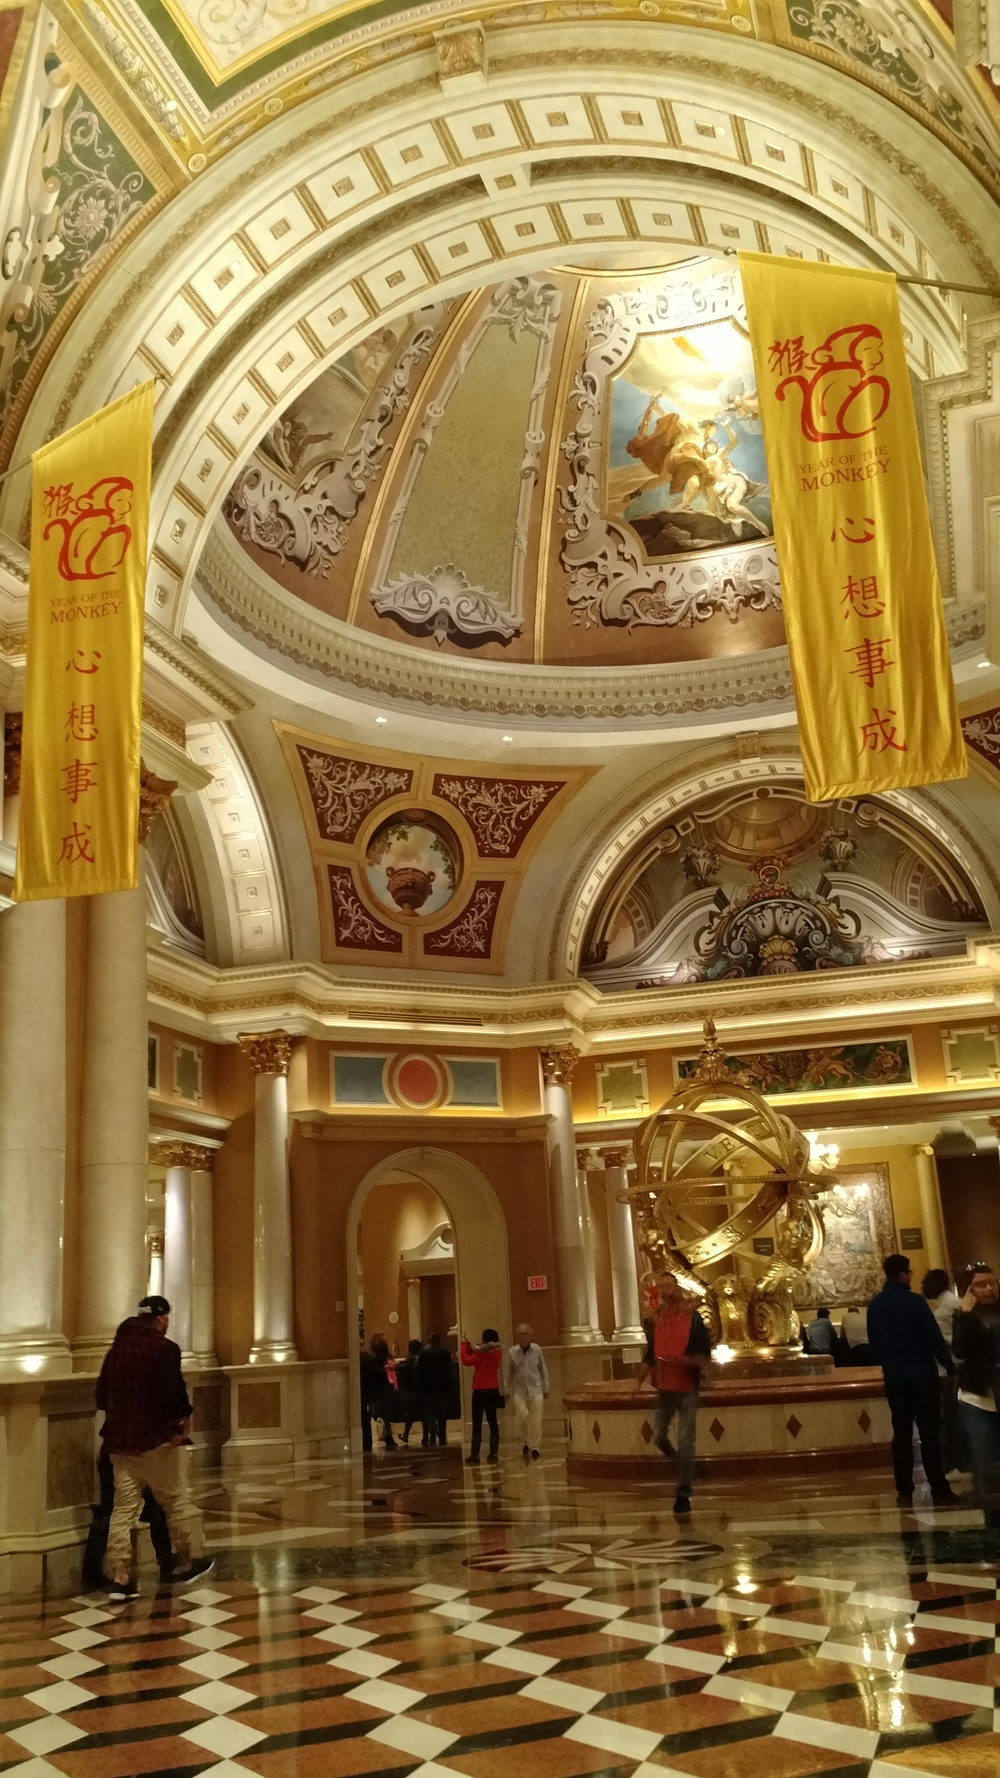 DAY 4 WALK VENETIAN HOTEL CHINESE NEW YEAR